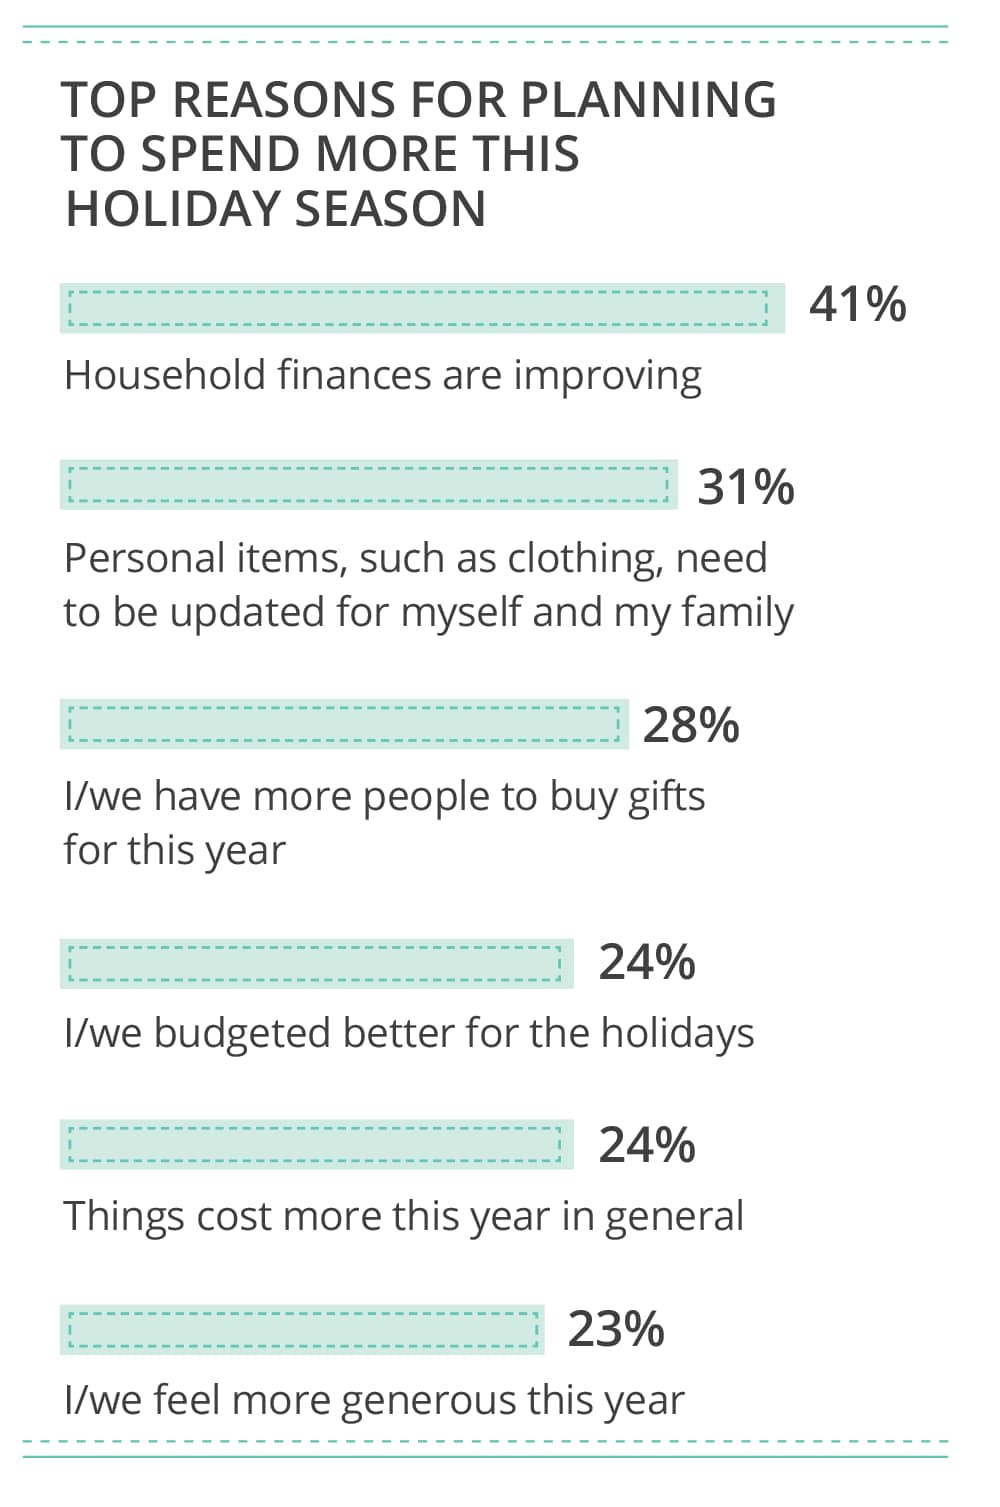 Top reasons for planning to spend more this holiday season